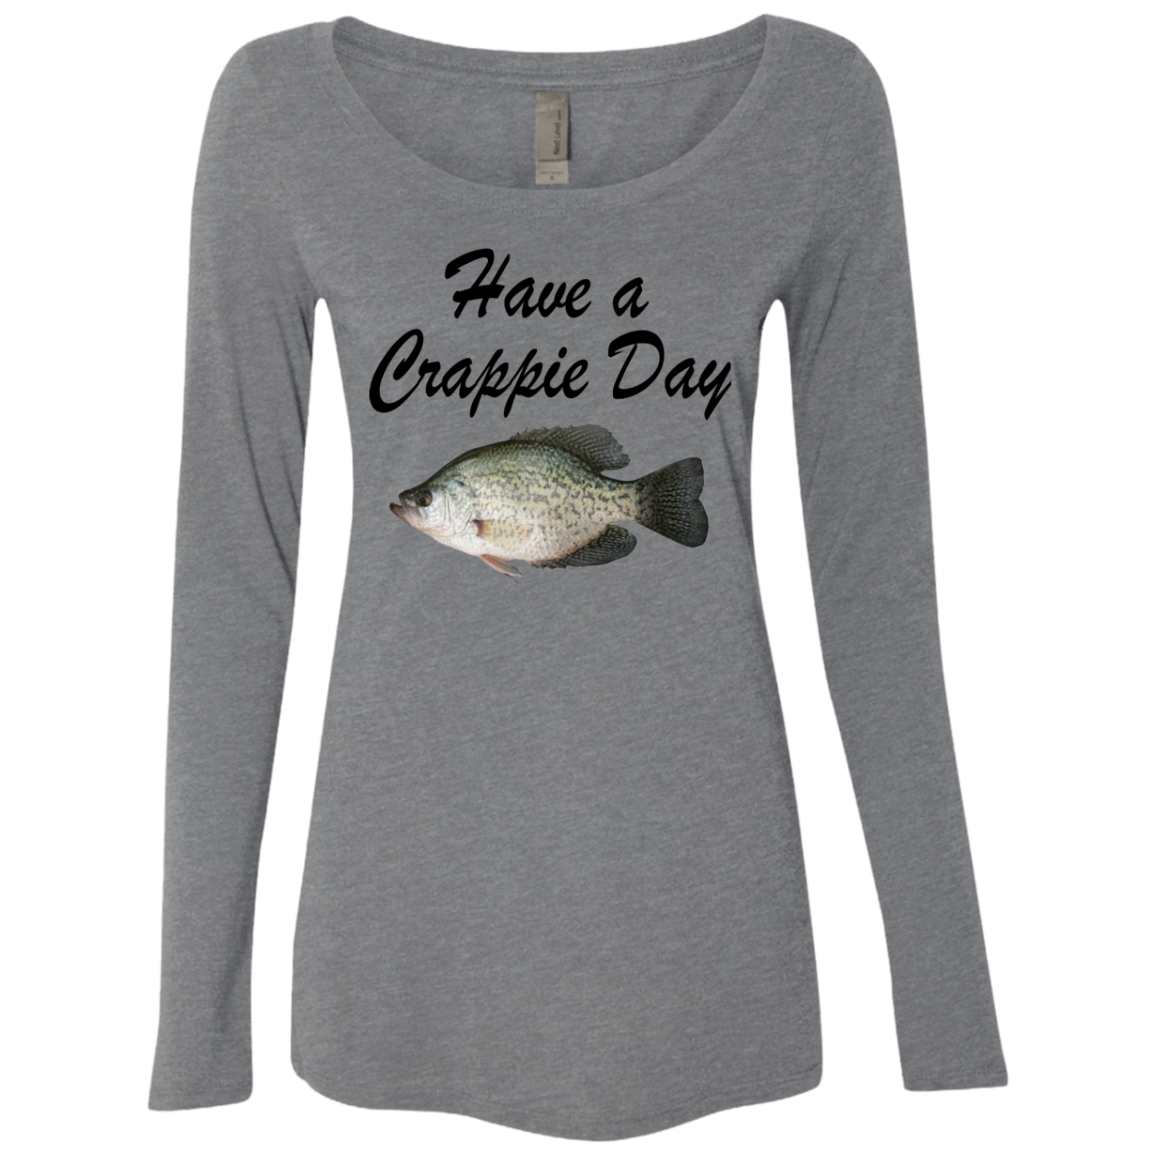 HAve A Crappie Day Women's Long Sleeve Tee